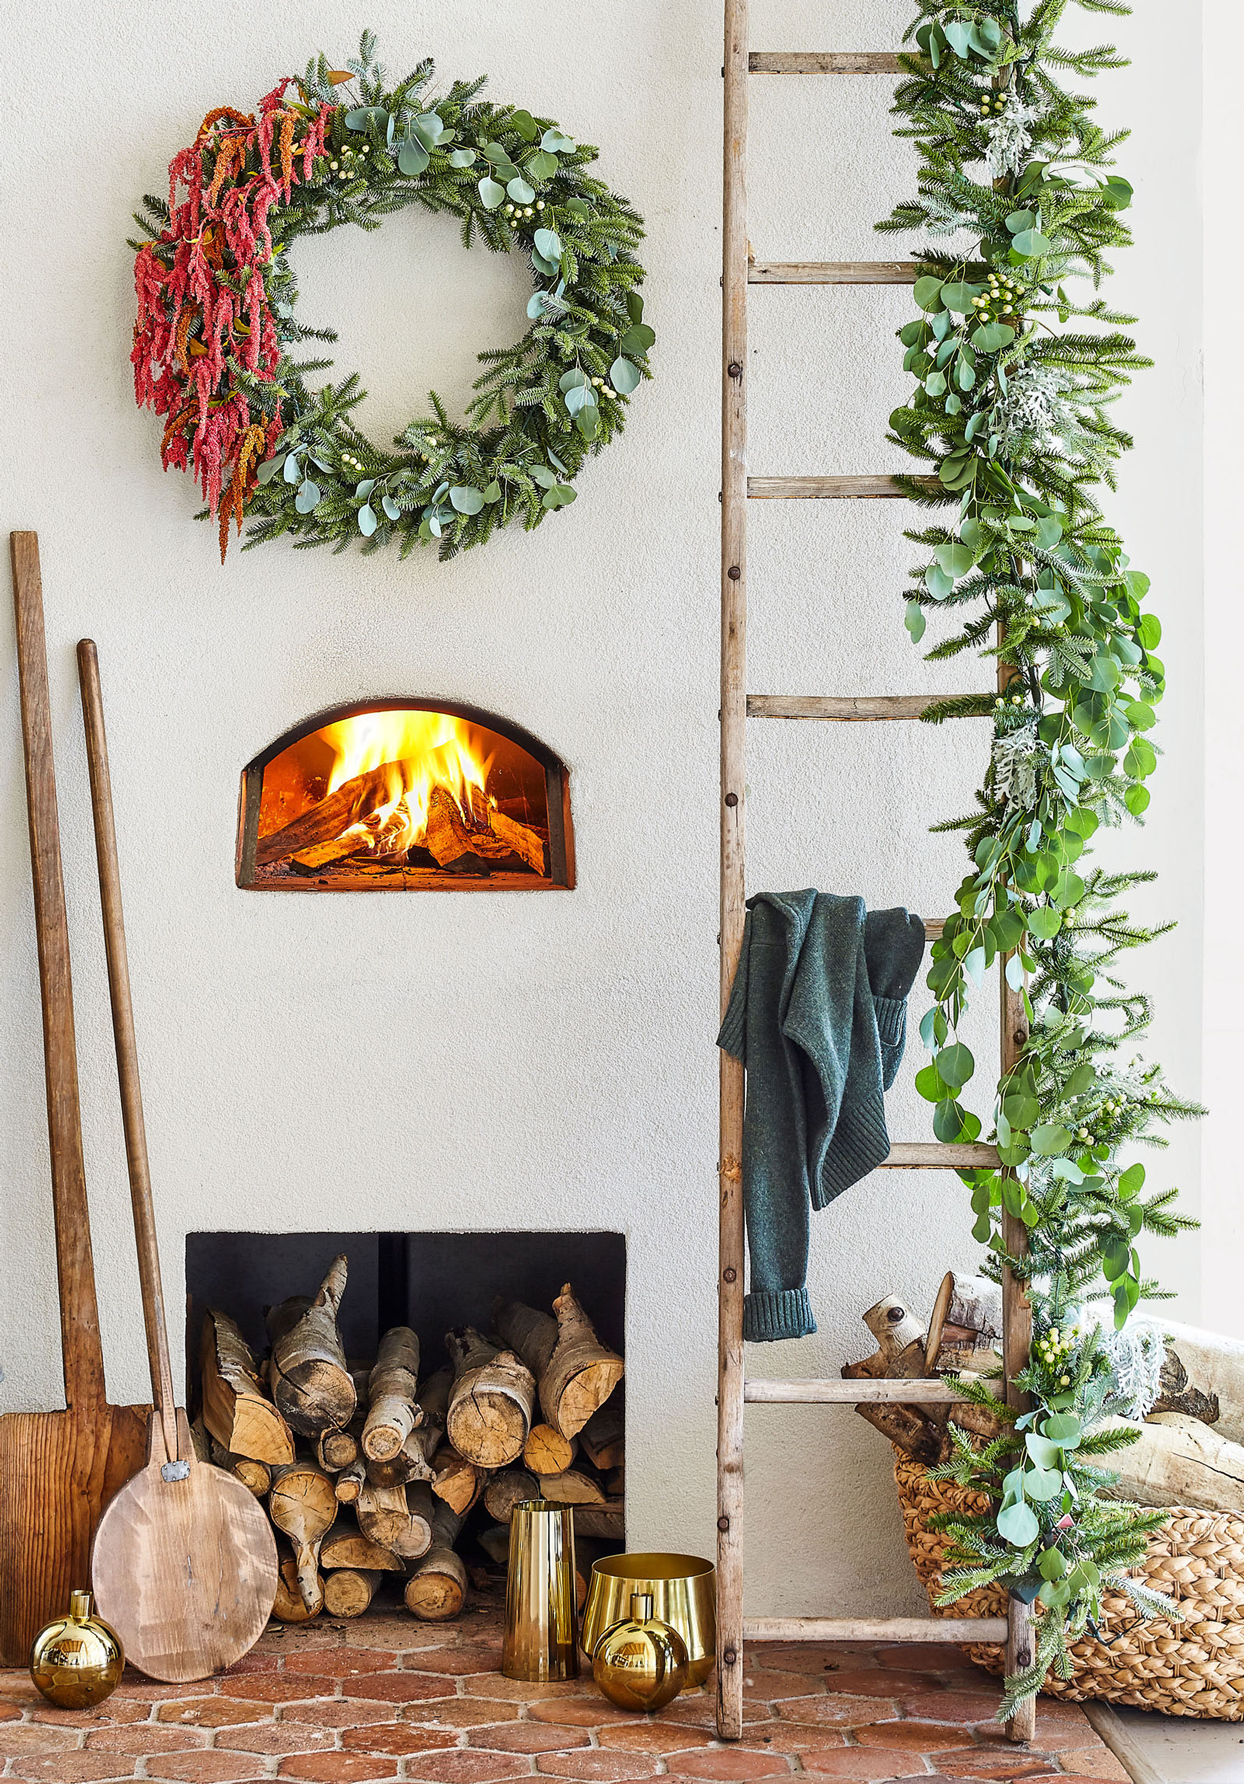 fireplace decorated with eucalyptus wreath and garland